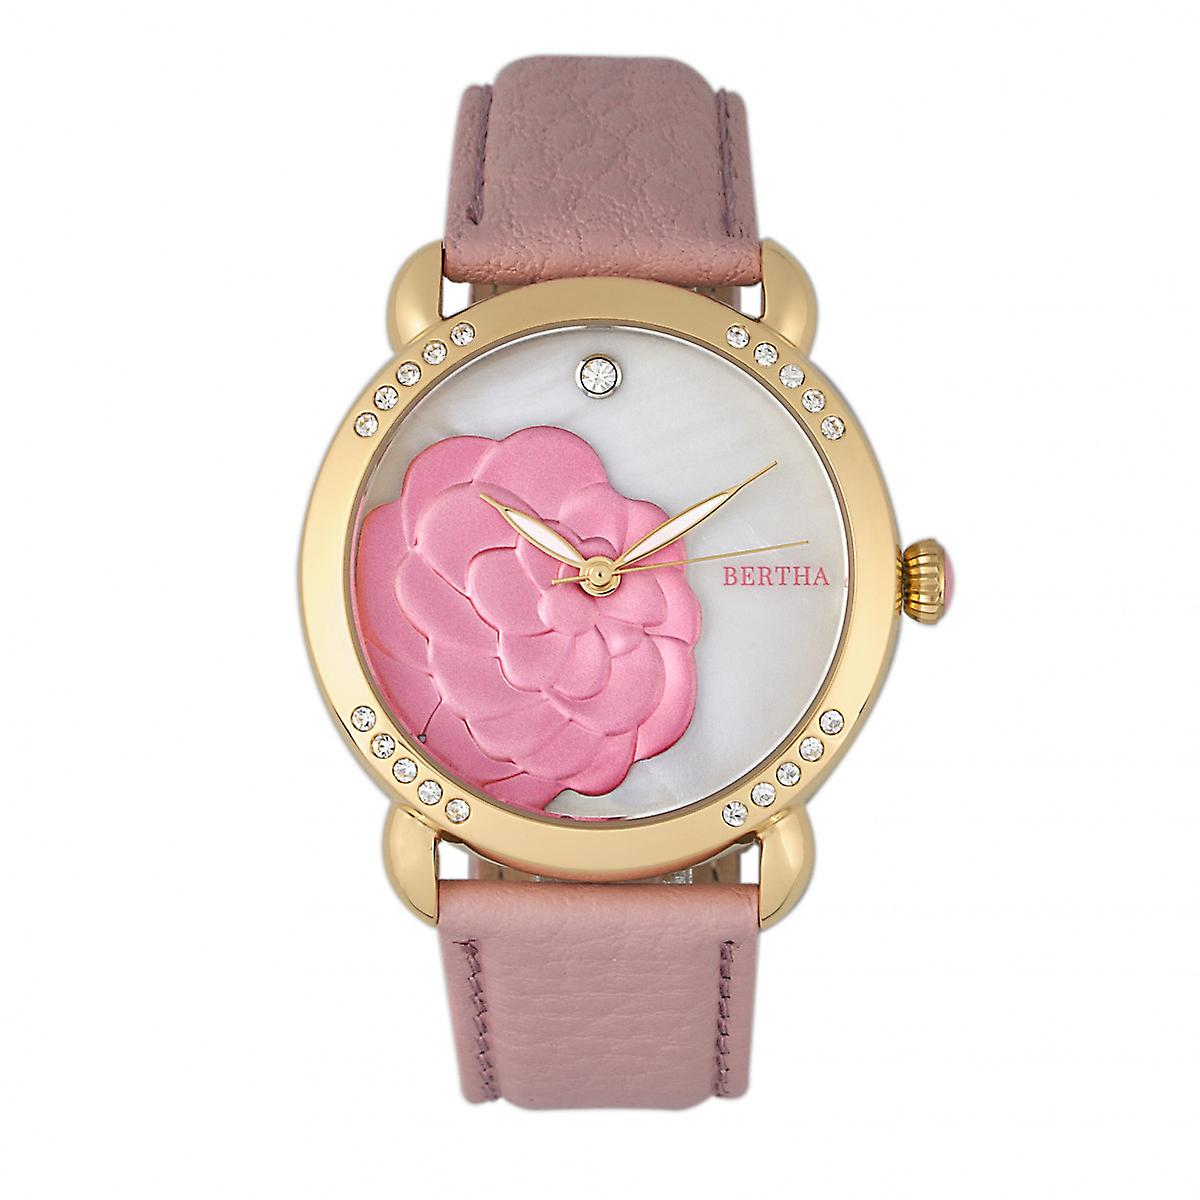 Bertha Daphne MOP Leather-Band Ladies Watch - Light Pink/White